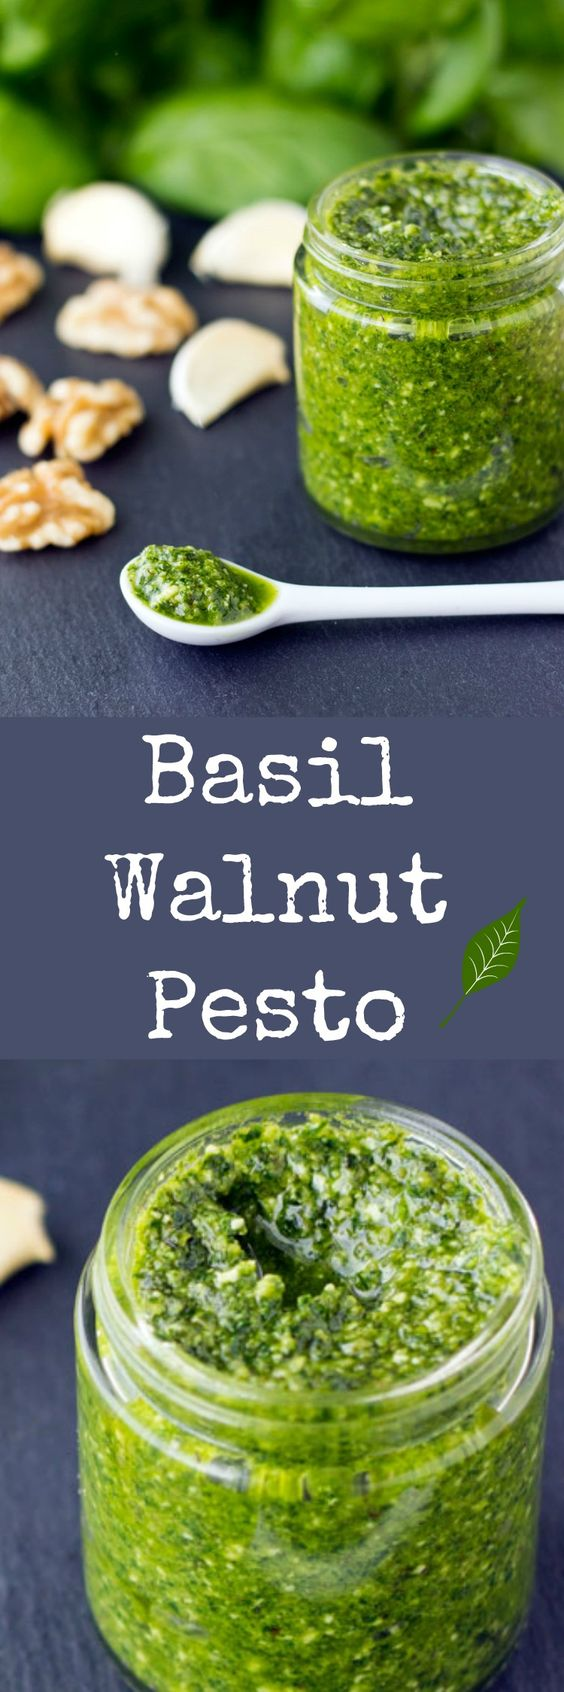 Basil Walnut Pesto | Recipe | Salts, Basil walnut pesto and Soups